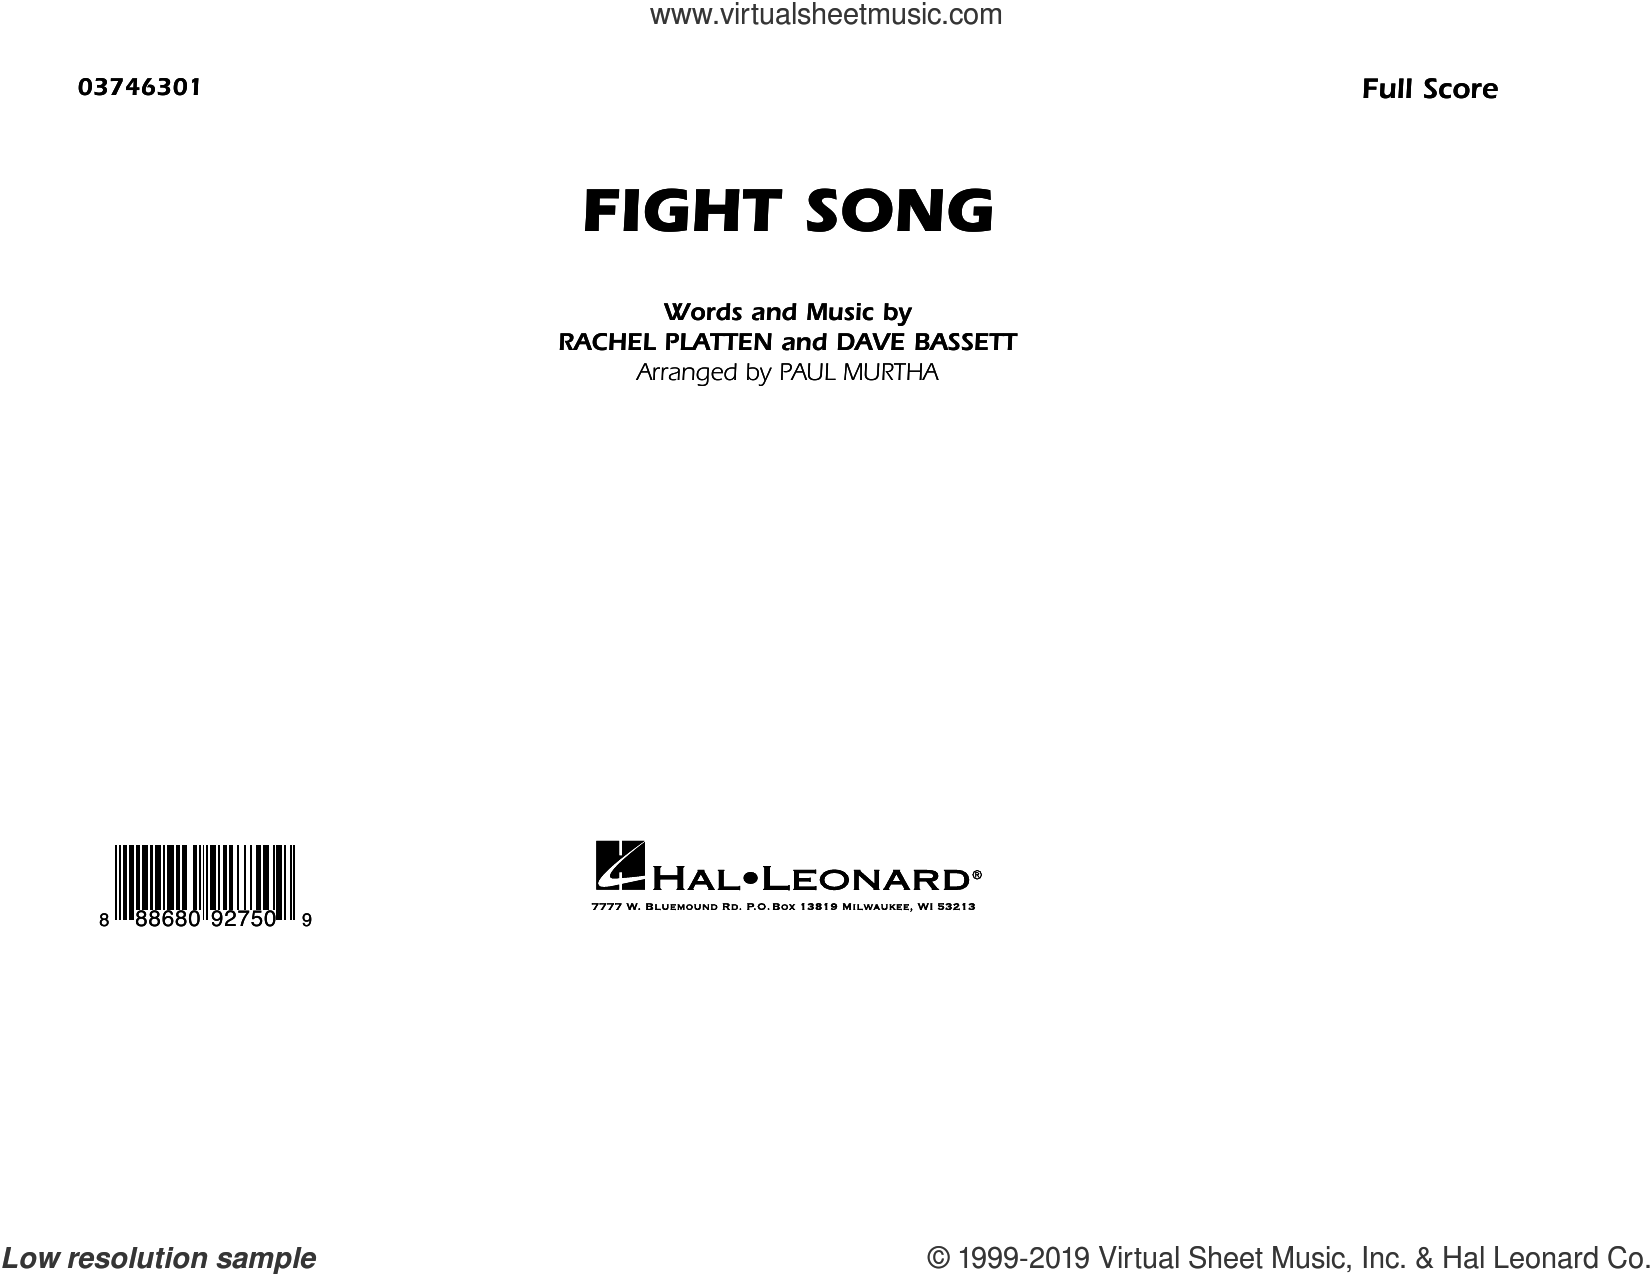 Fight Song (arr. Paul Murtha) (COMPLETE) sheet music for marching band by Paul Murtha, Dave Bassett and Rachel Platten, intermediate skill level